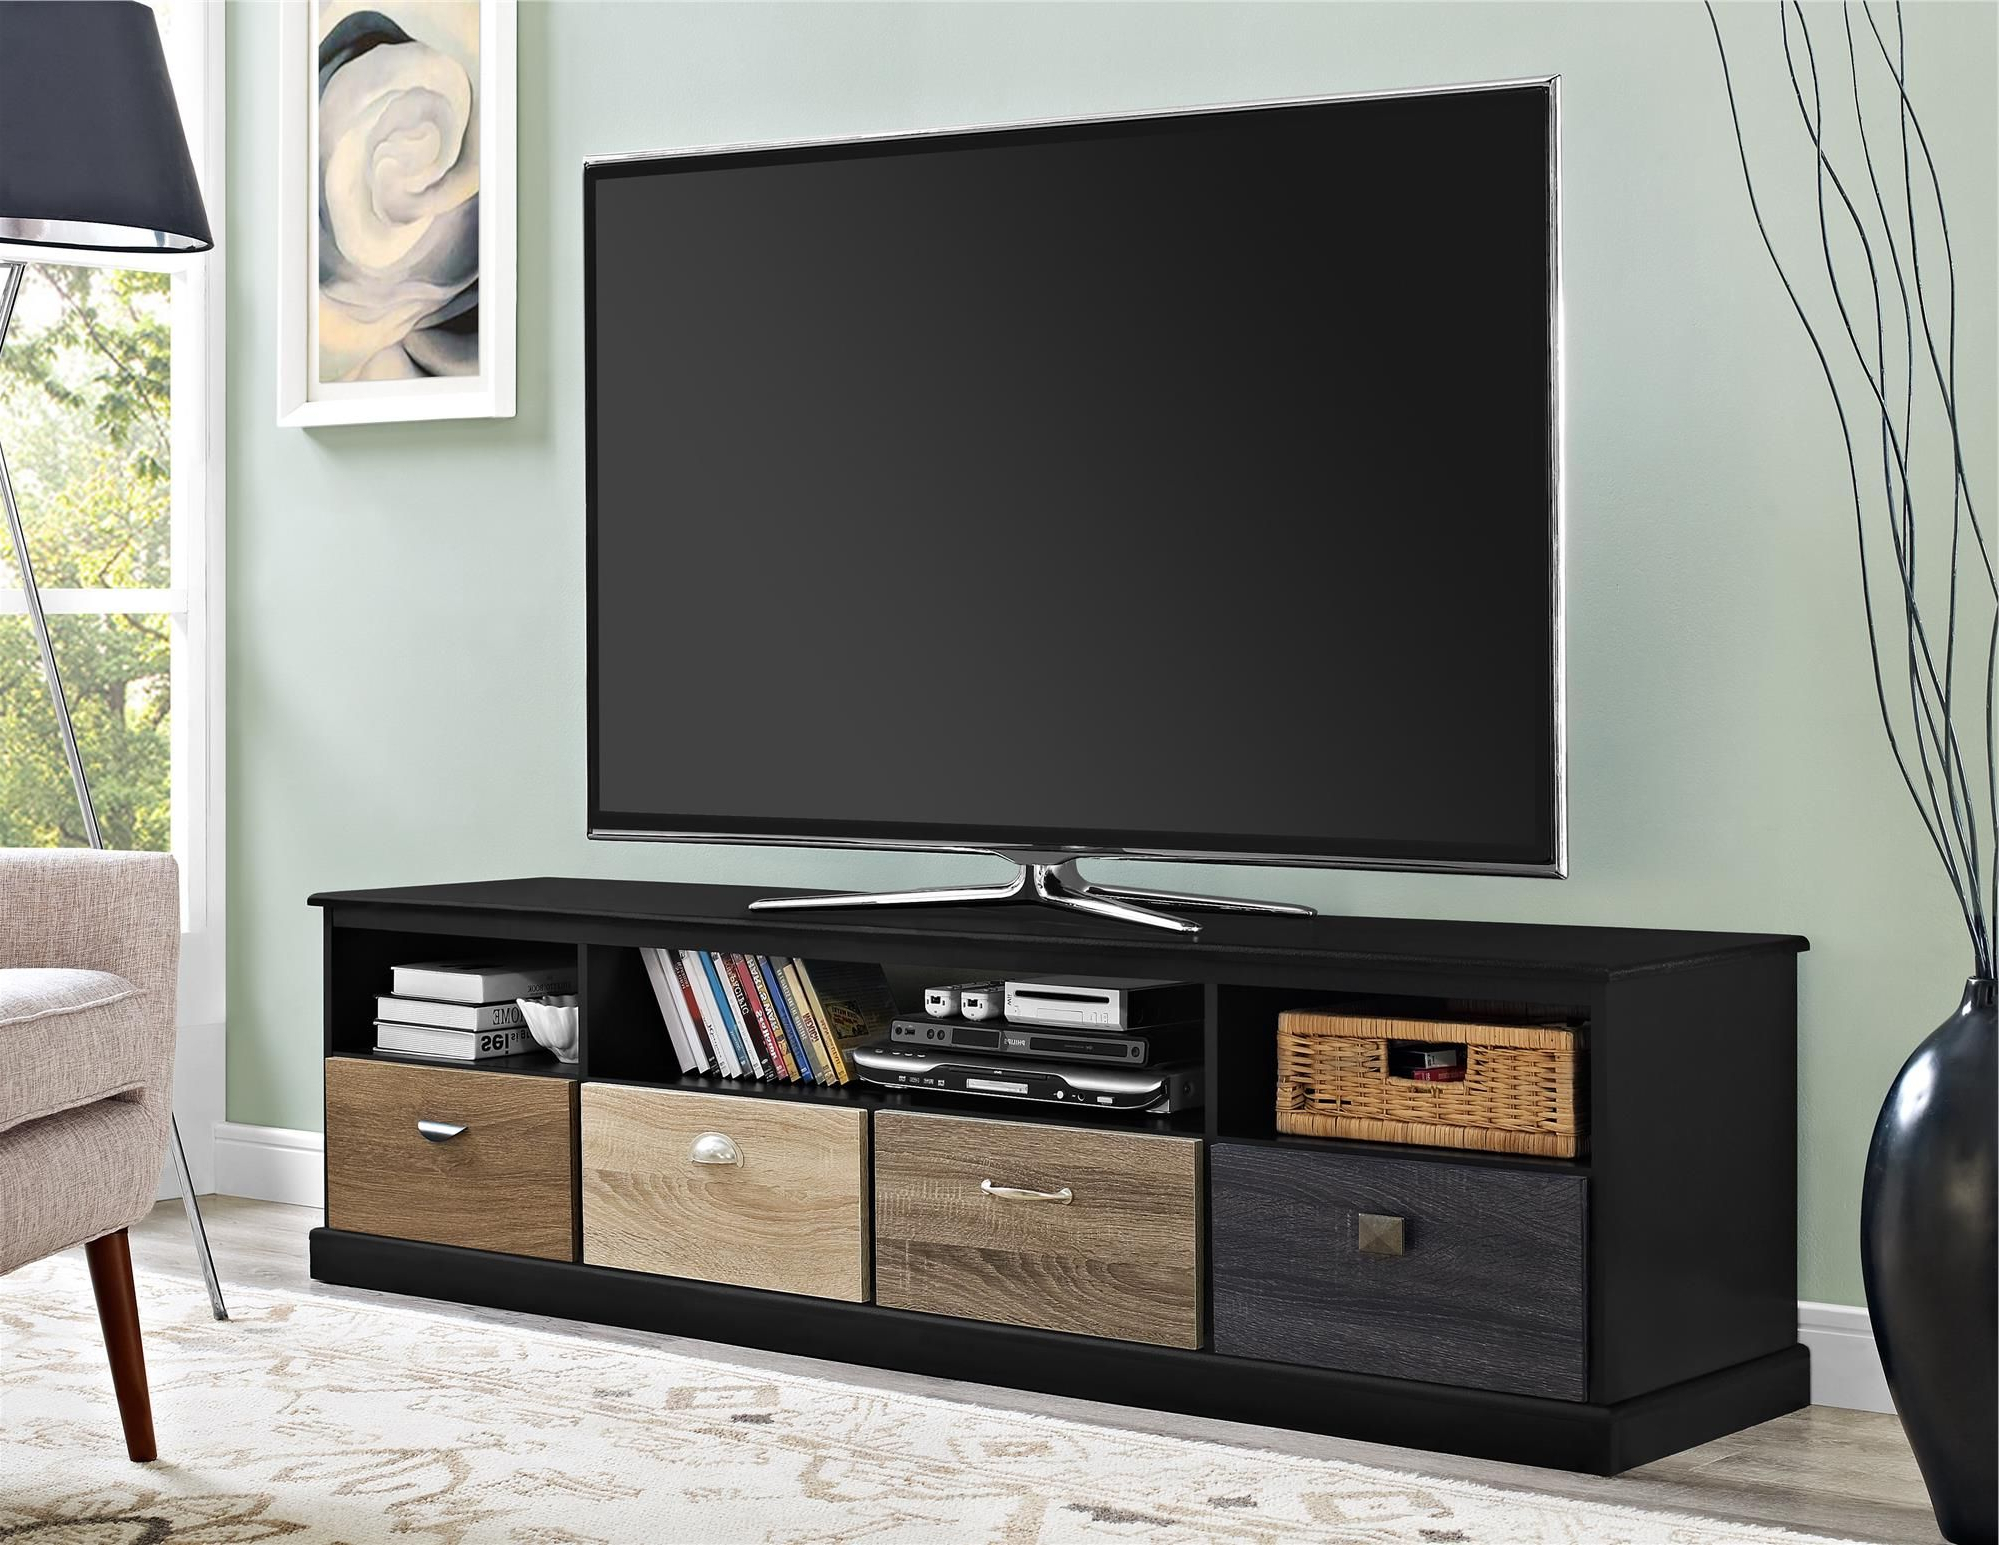 """Spruce Up Your Living Room With The Altra Blackburn 65"""" Tv In Fashionable Aaric Tv Stands For Tvs Up To 65"""" (View 3 of 20)"""